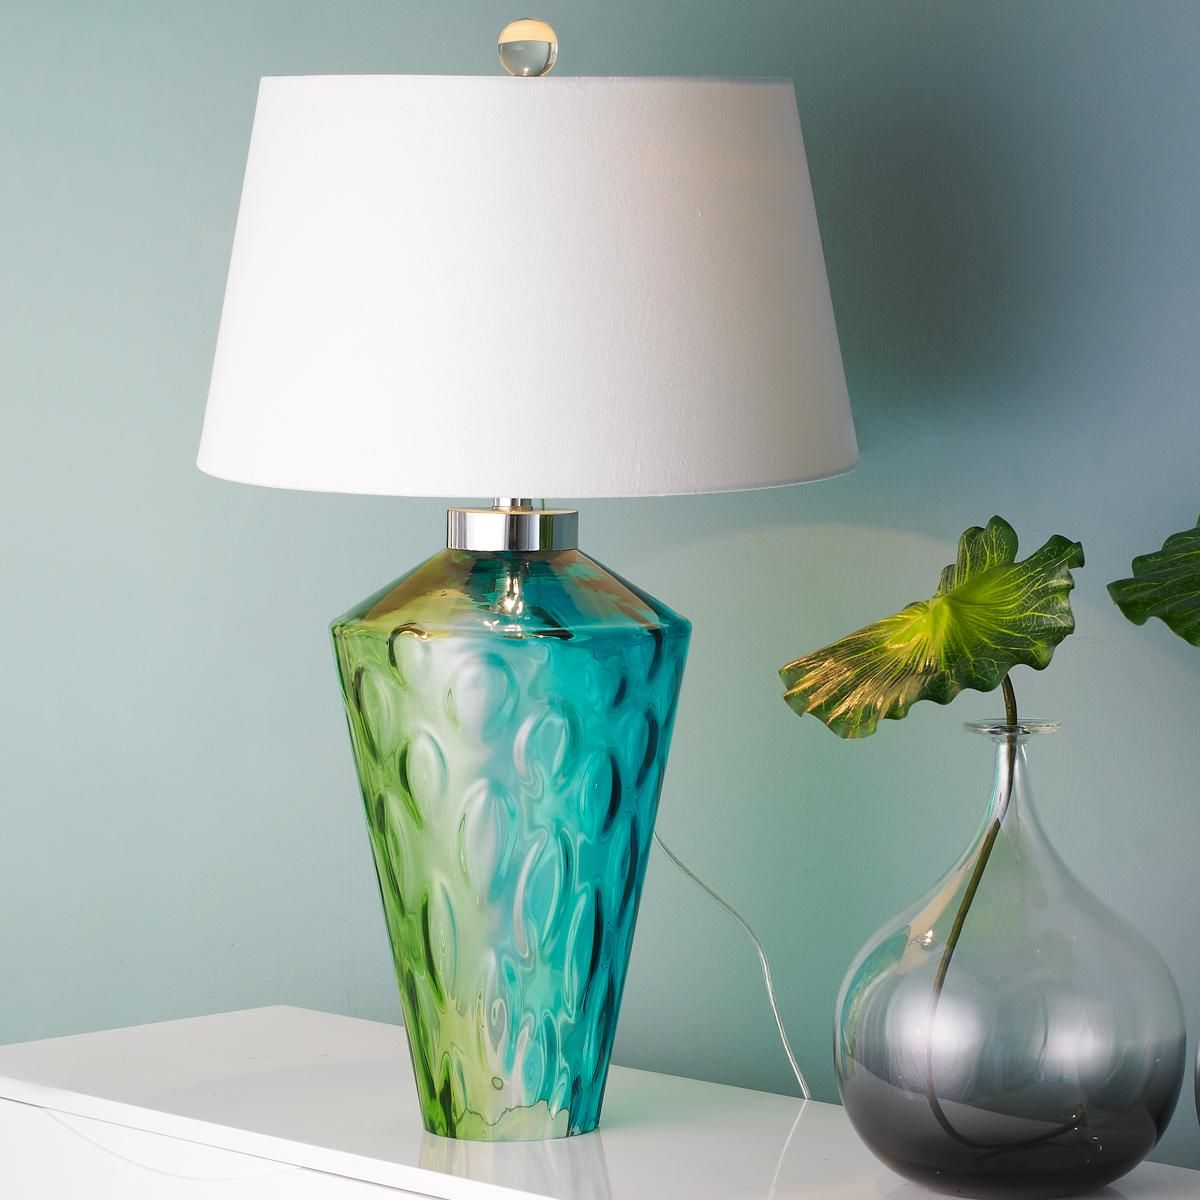 Seaside Water Glass Table Lamp Aqua Blue And Lime Green Glass Vase Has A  Rippling Water